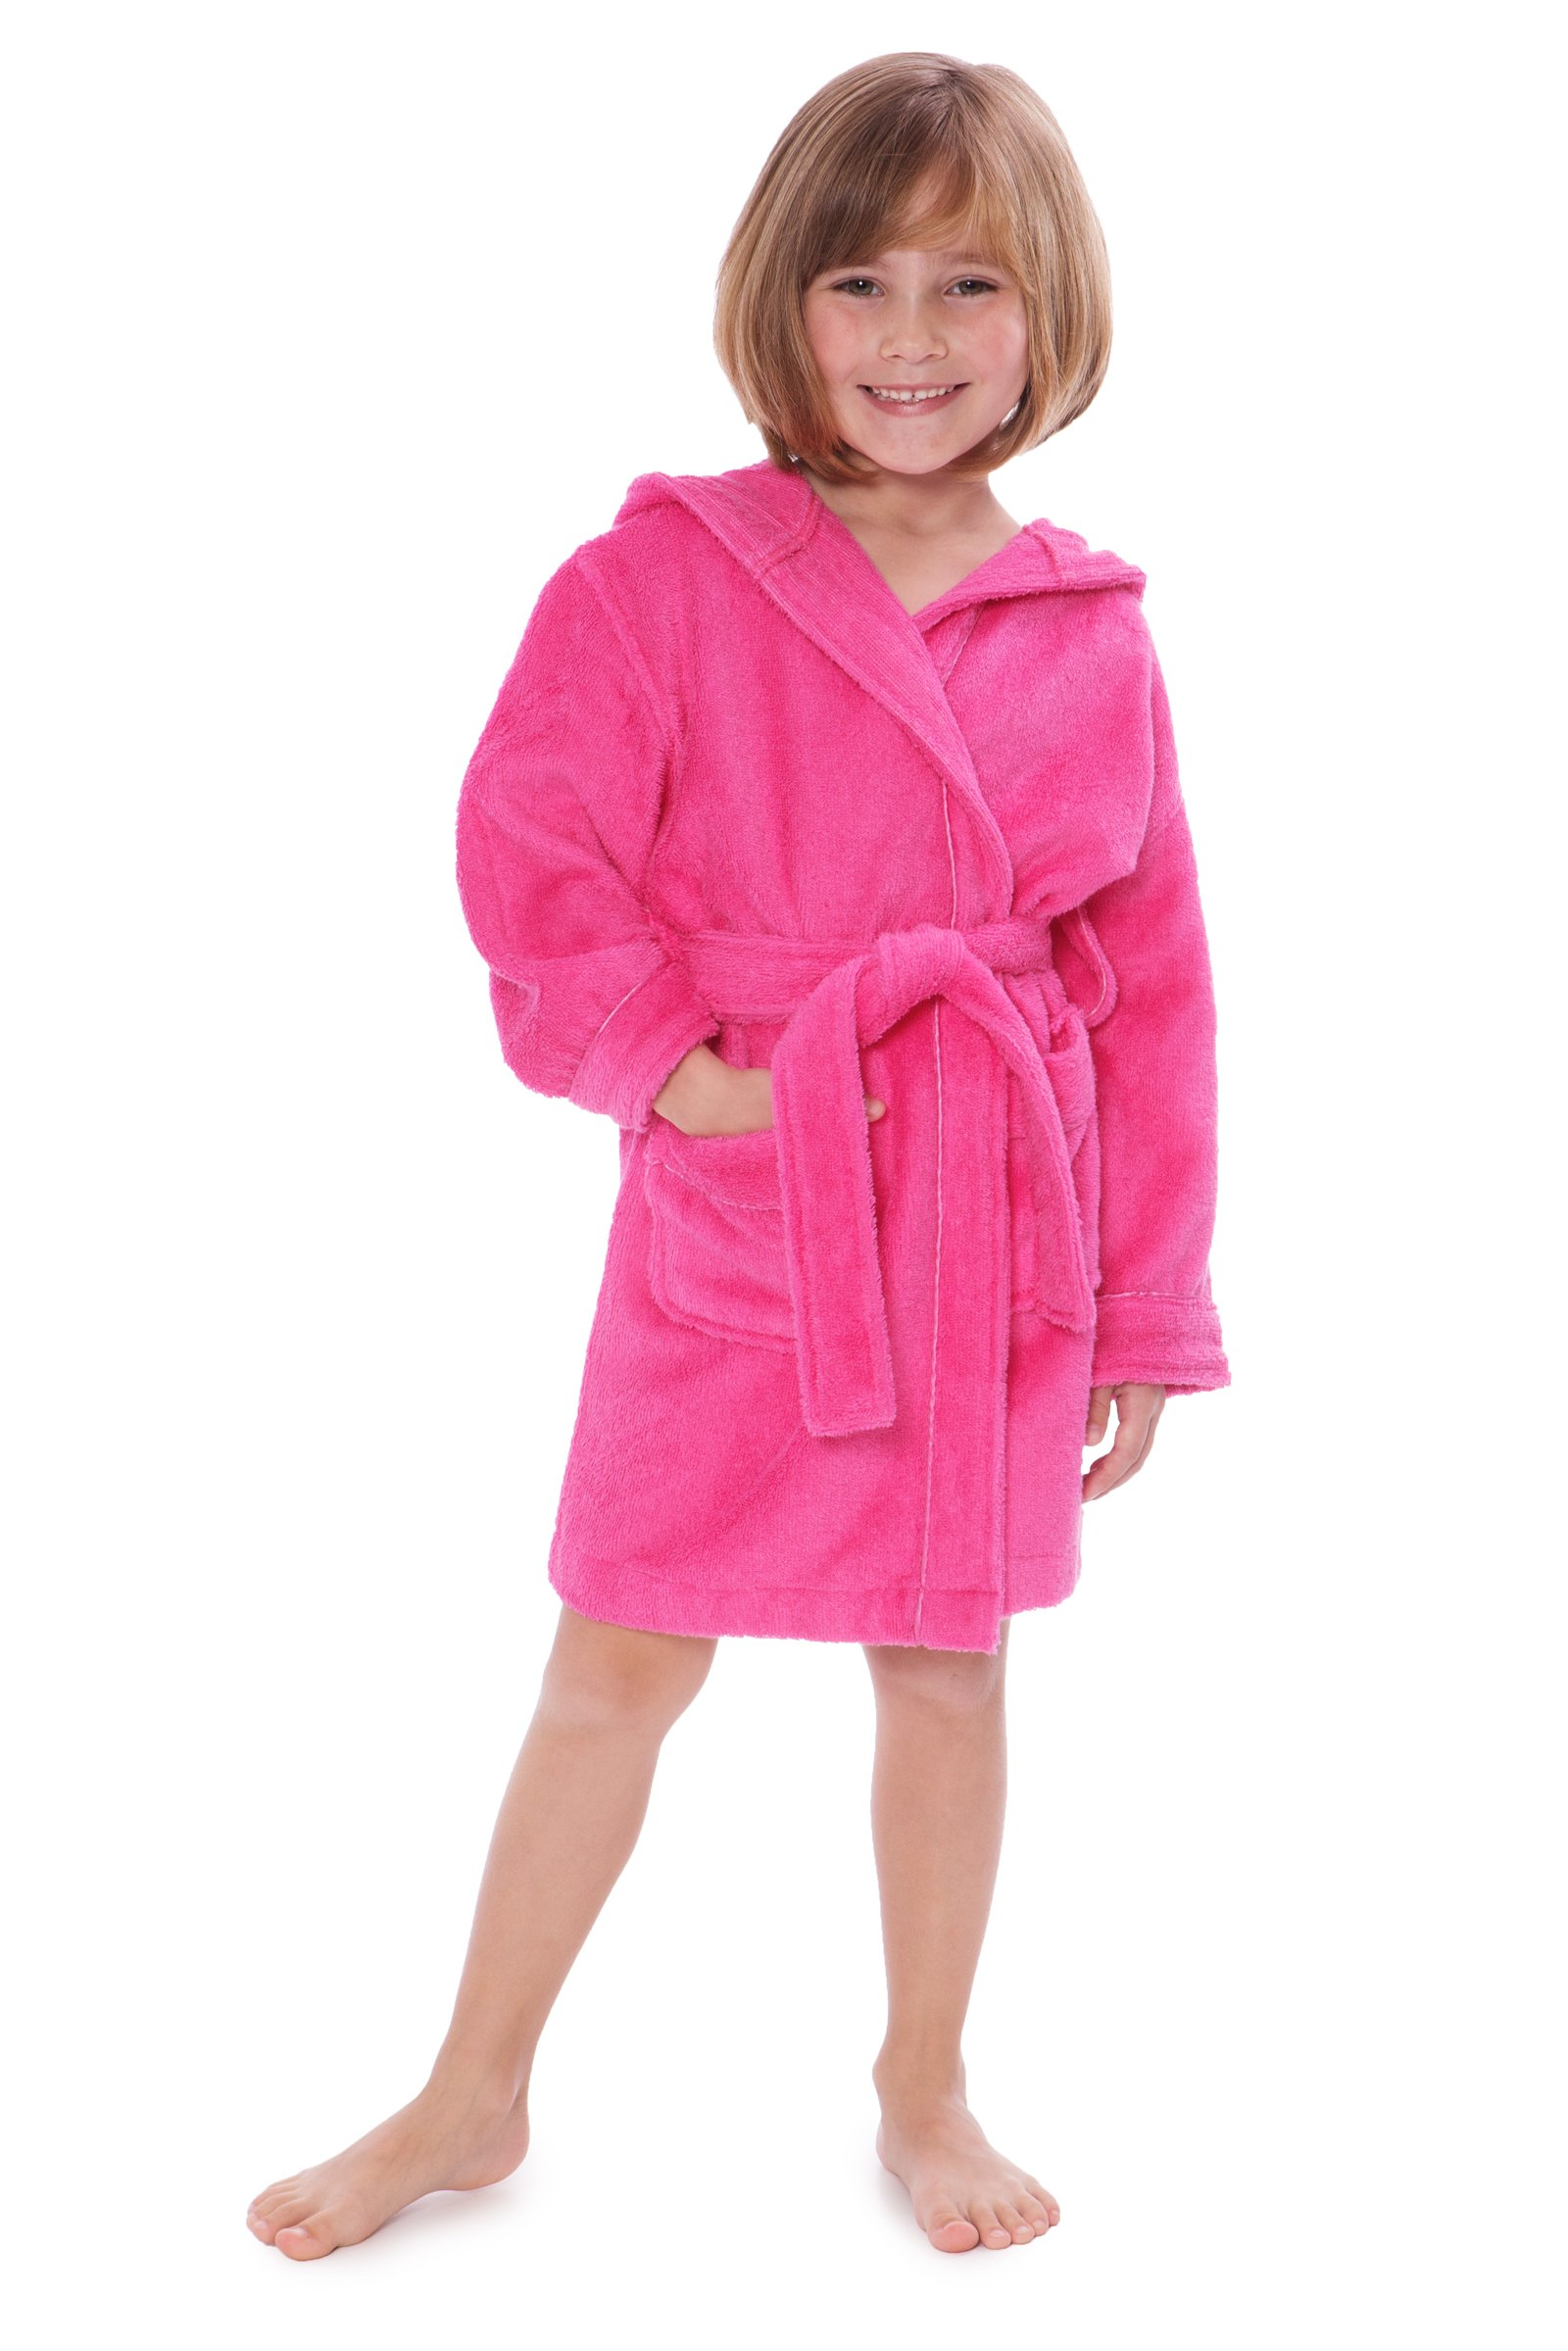 Kid's Hooded Terry Cloth Bathrobe - Cozy Robe by for Kids Texere (Rub-A-Dub, French Rose, Large) Best Gifts for Son Daughter KB0101-FRR-L